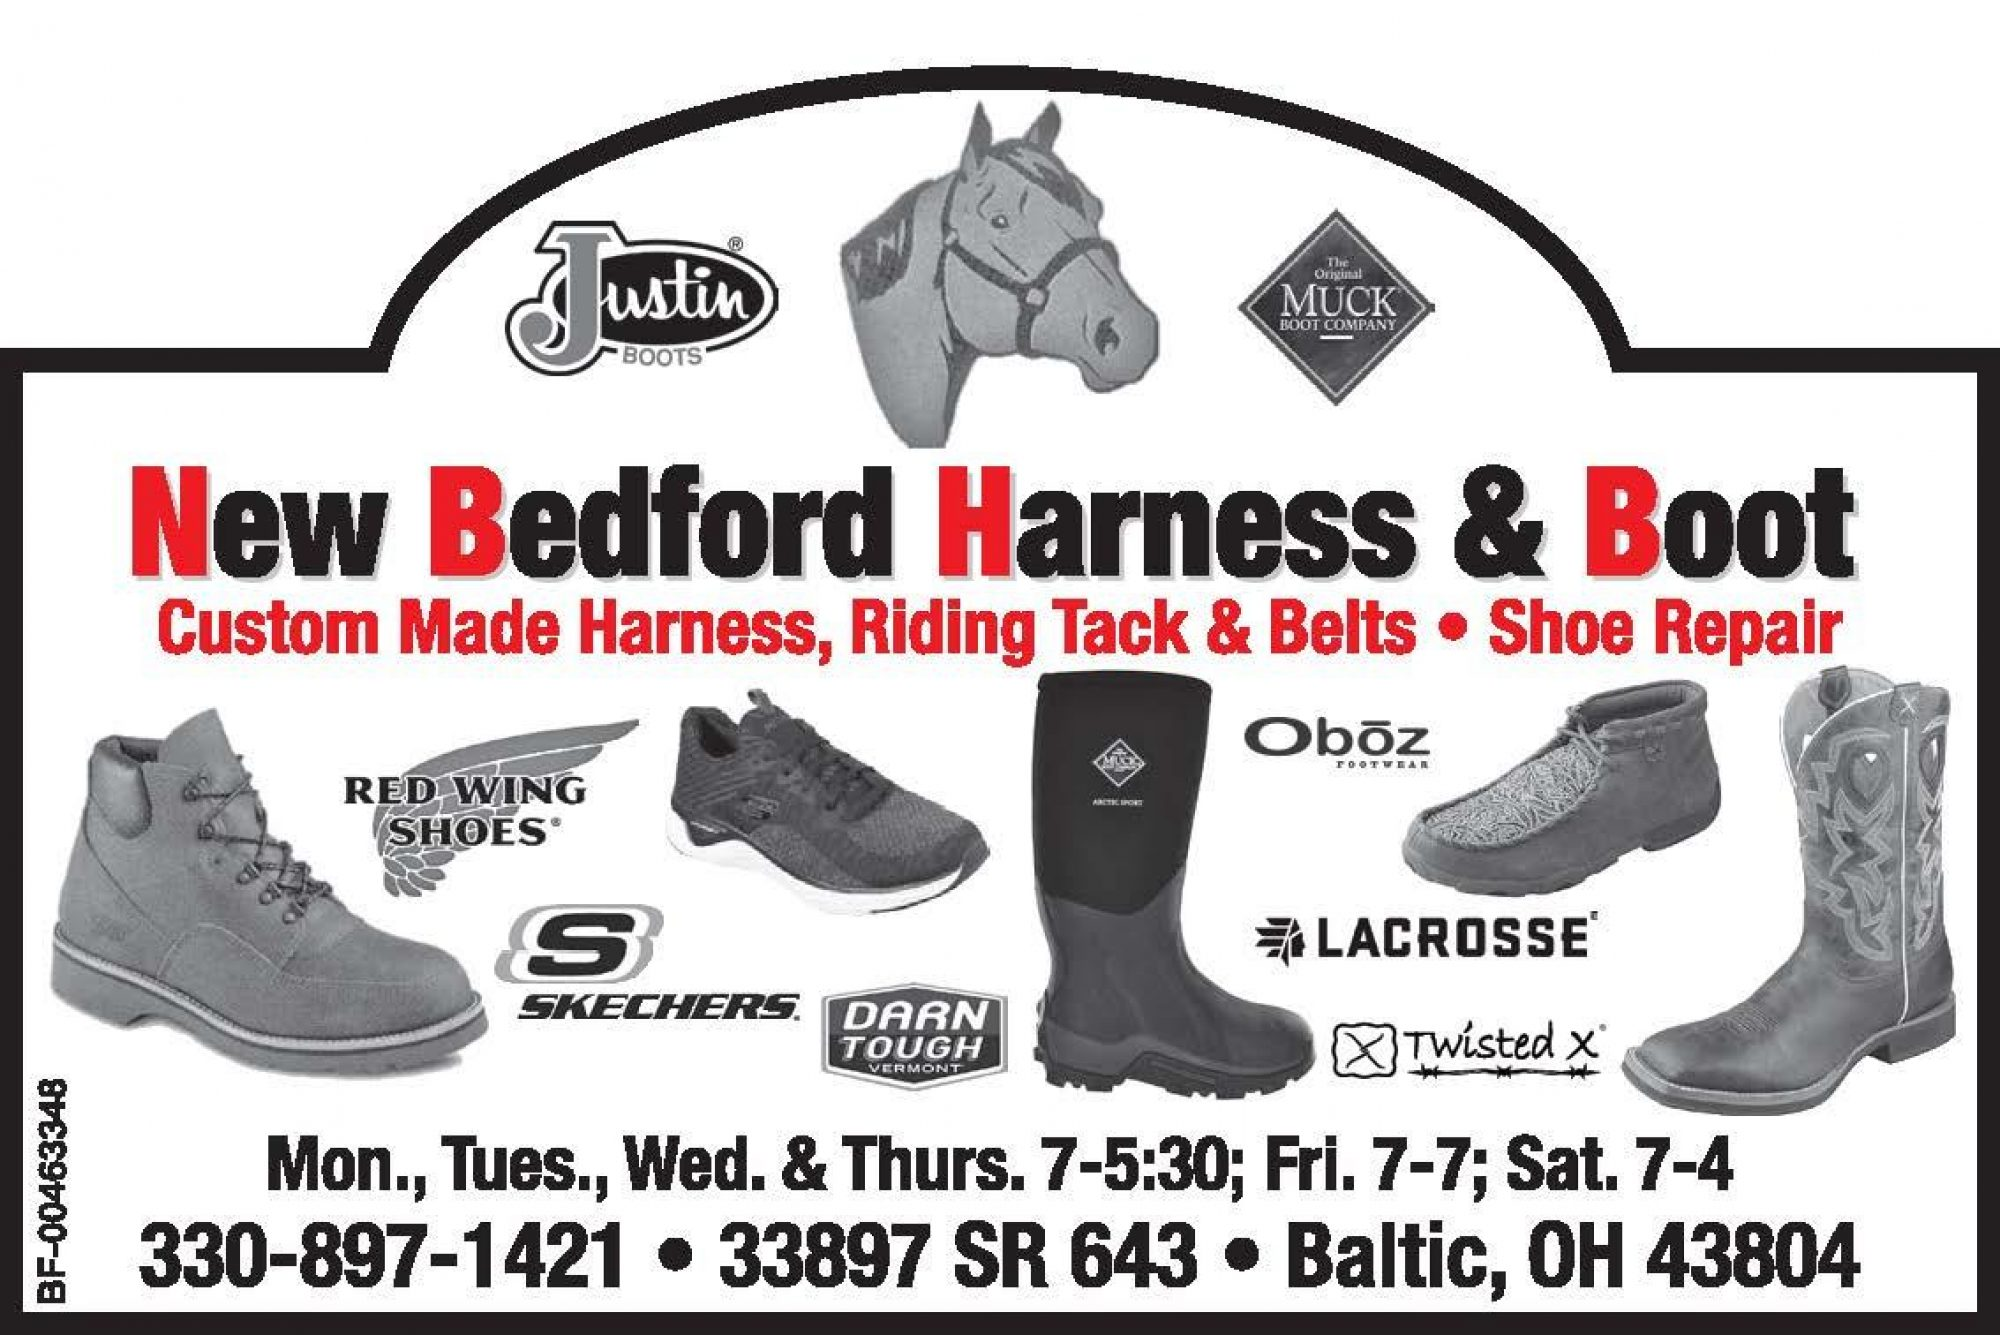 New Bedford Harness & Boot Ohio Amish Country  Ohio's Amish Country